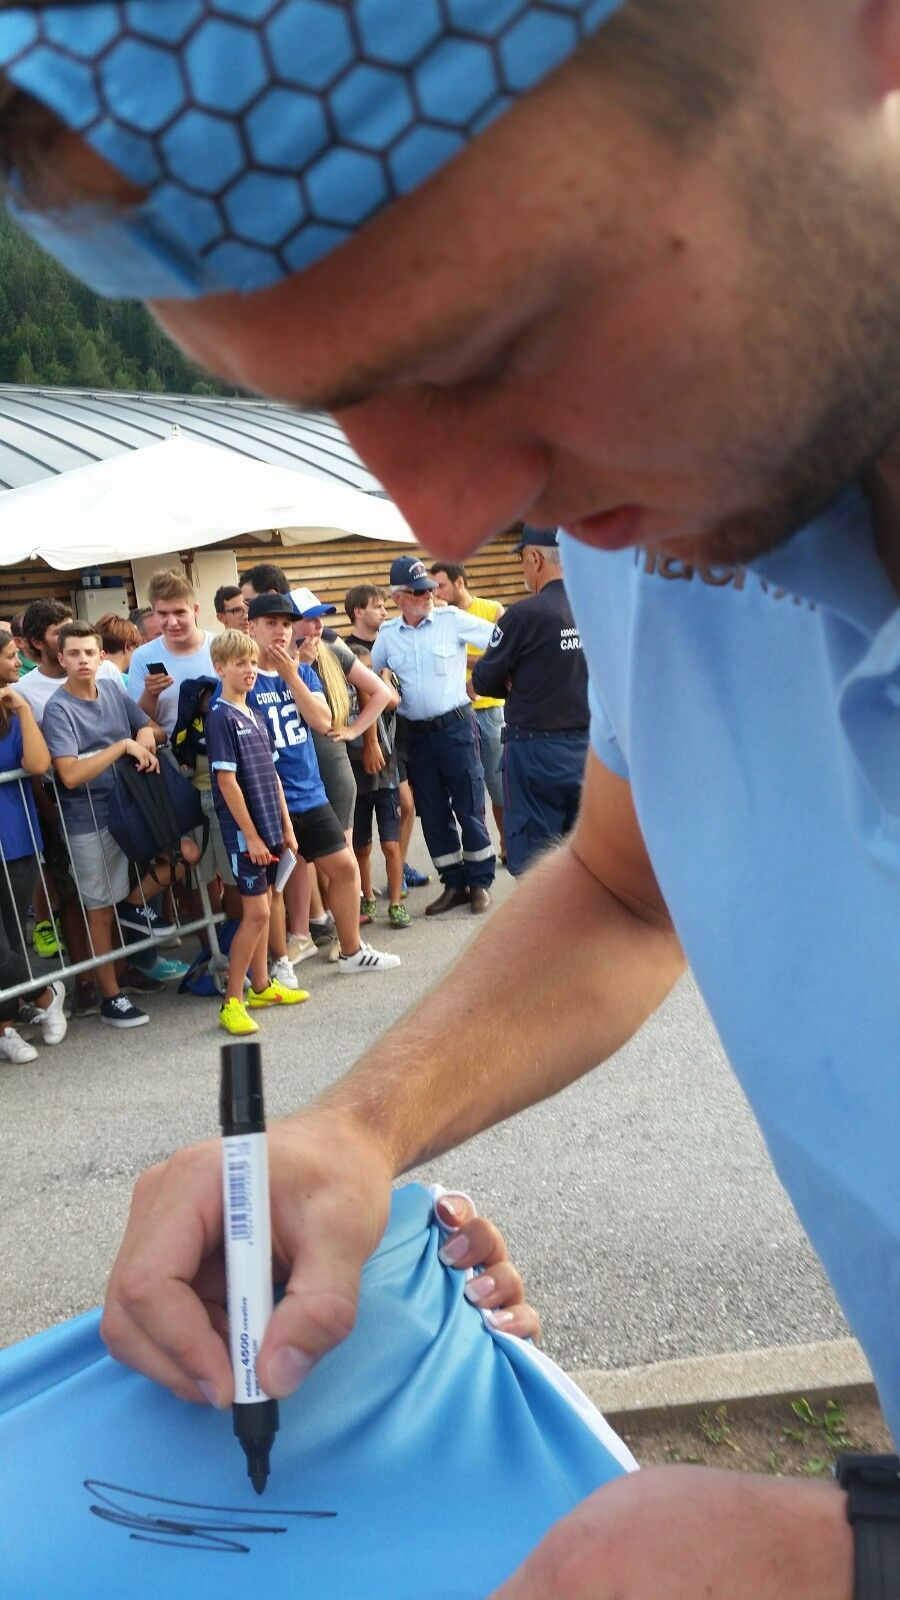 Lazio Match Issued Tim Jersey Finale Tim Issued Cup 2015 signed by de Vrij+Lulic a92453